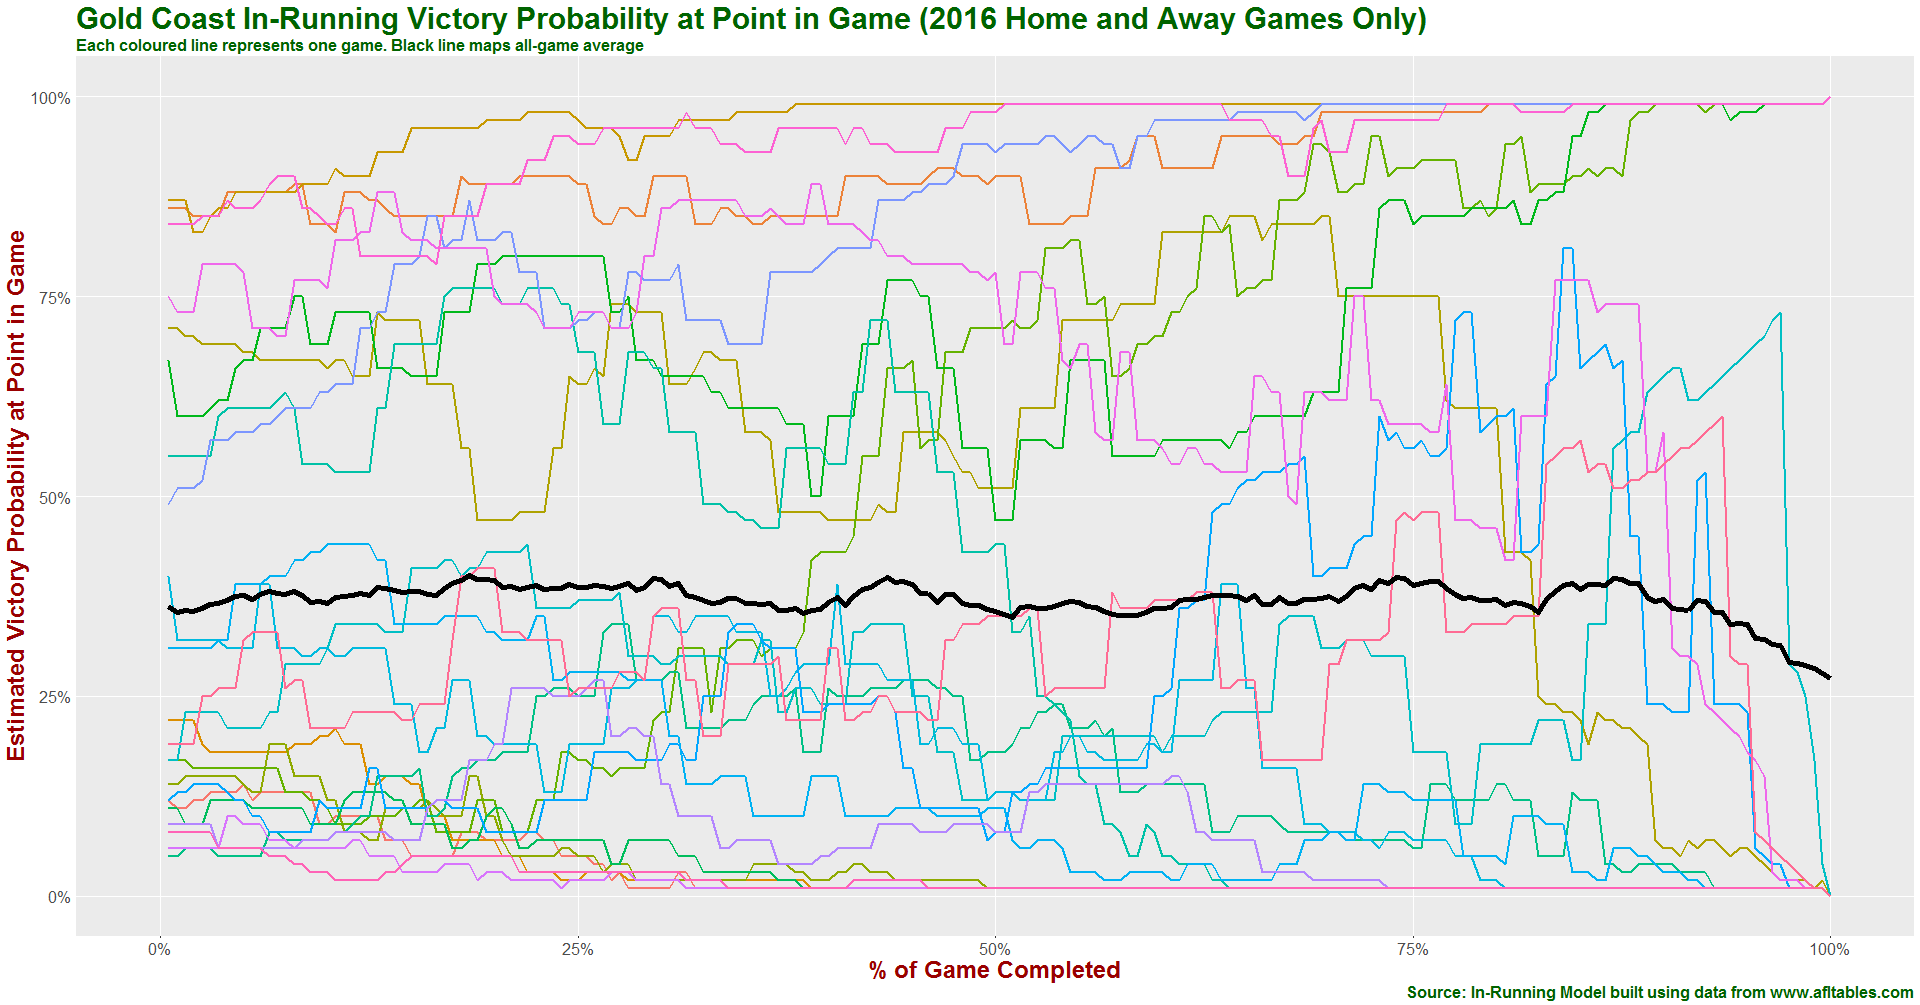 Gold Coast in-running prob history 2016.png